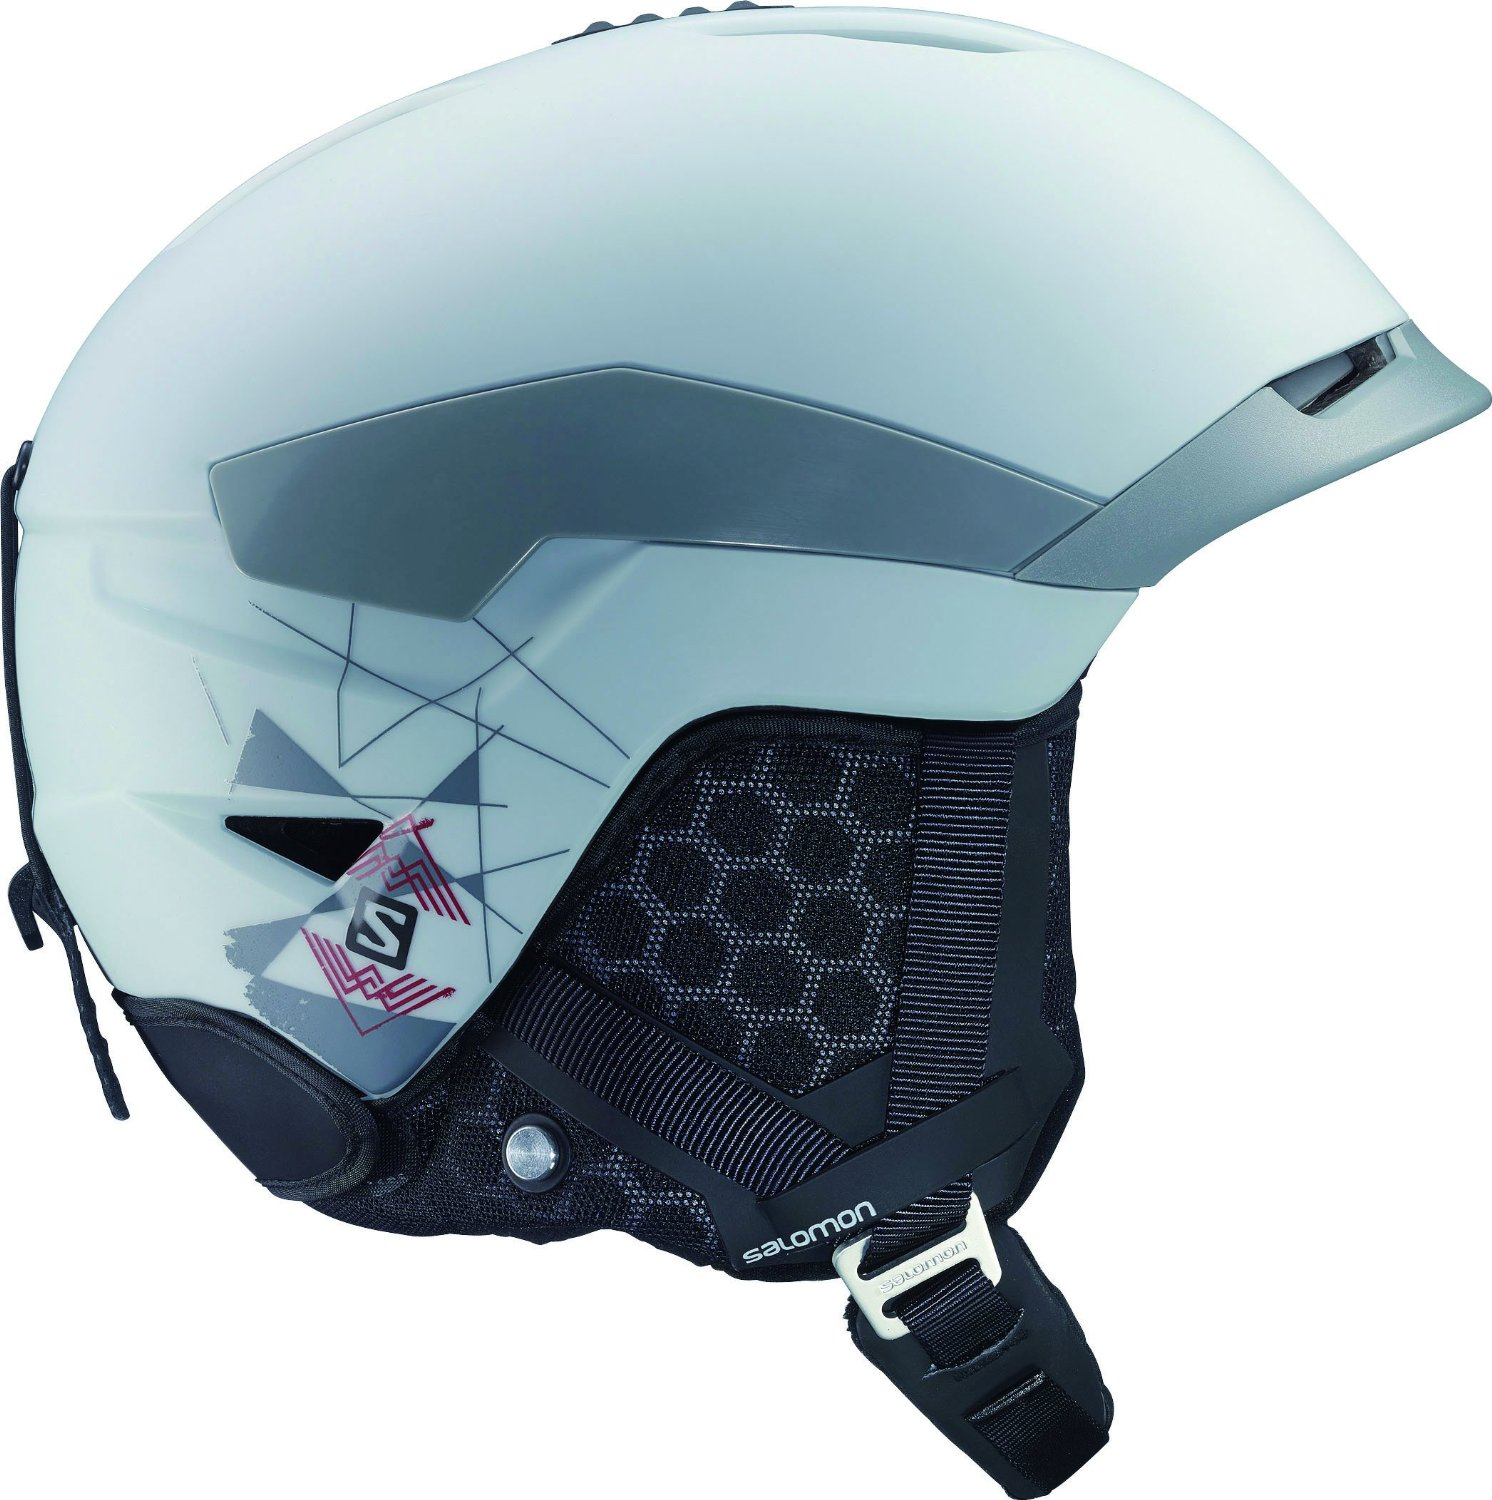 Large Salomon Bicycle Helmets